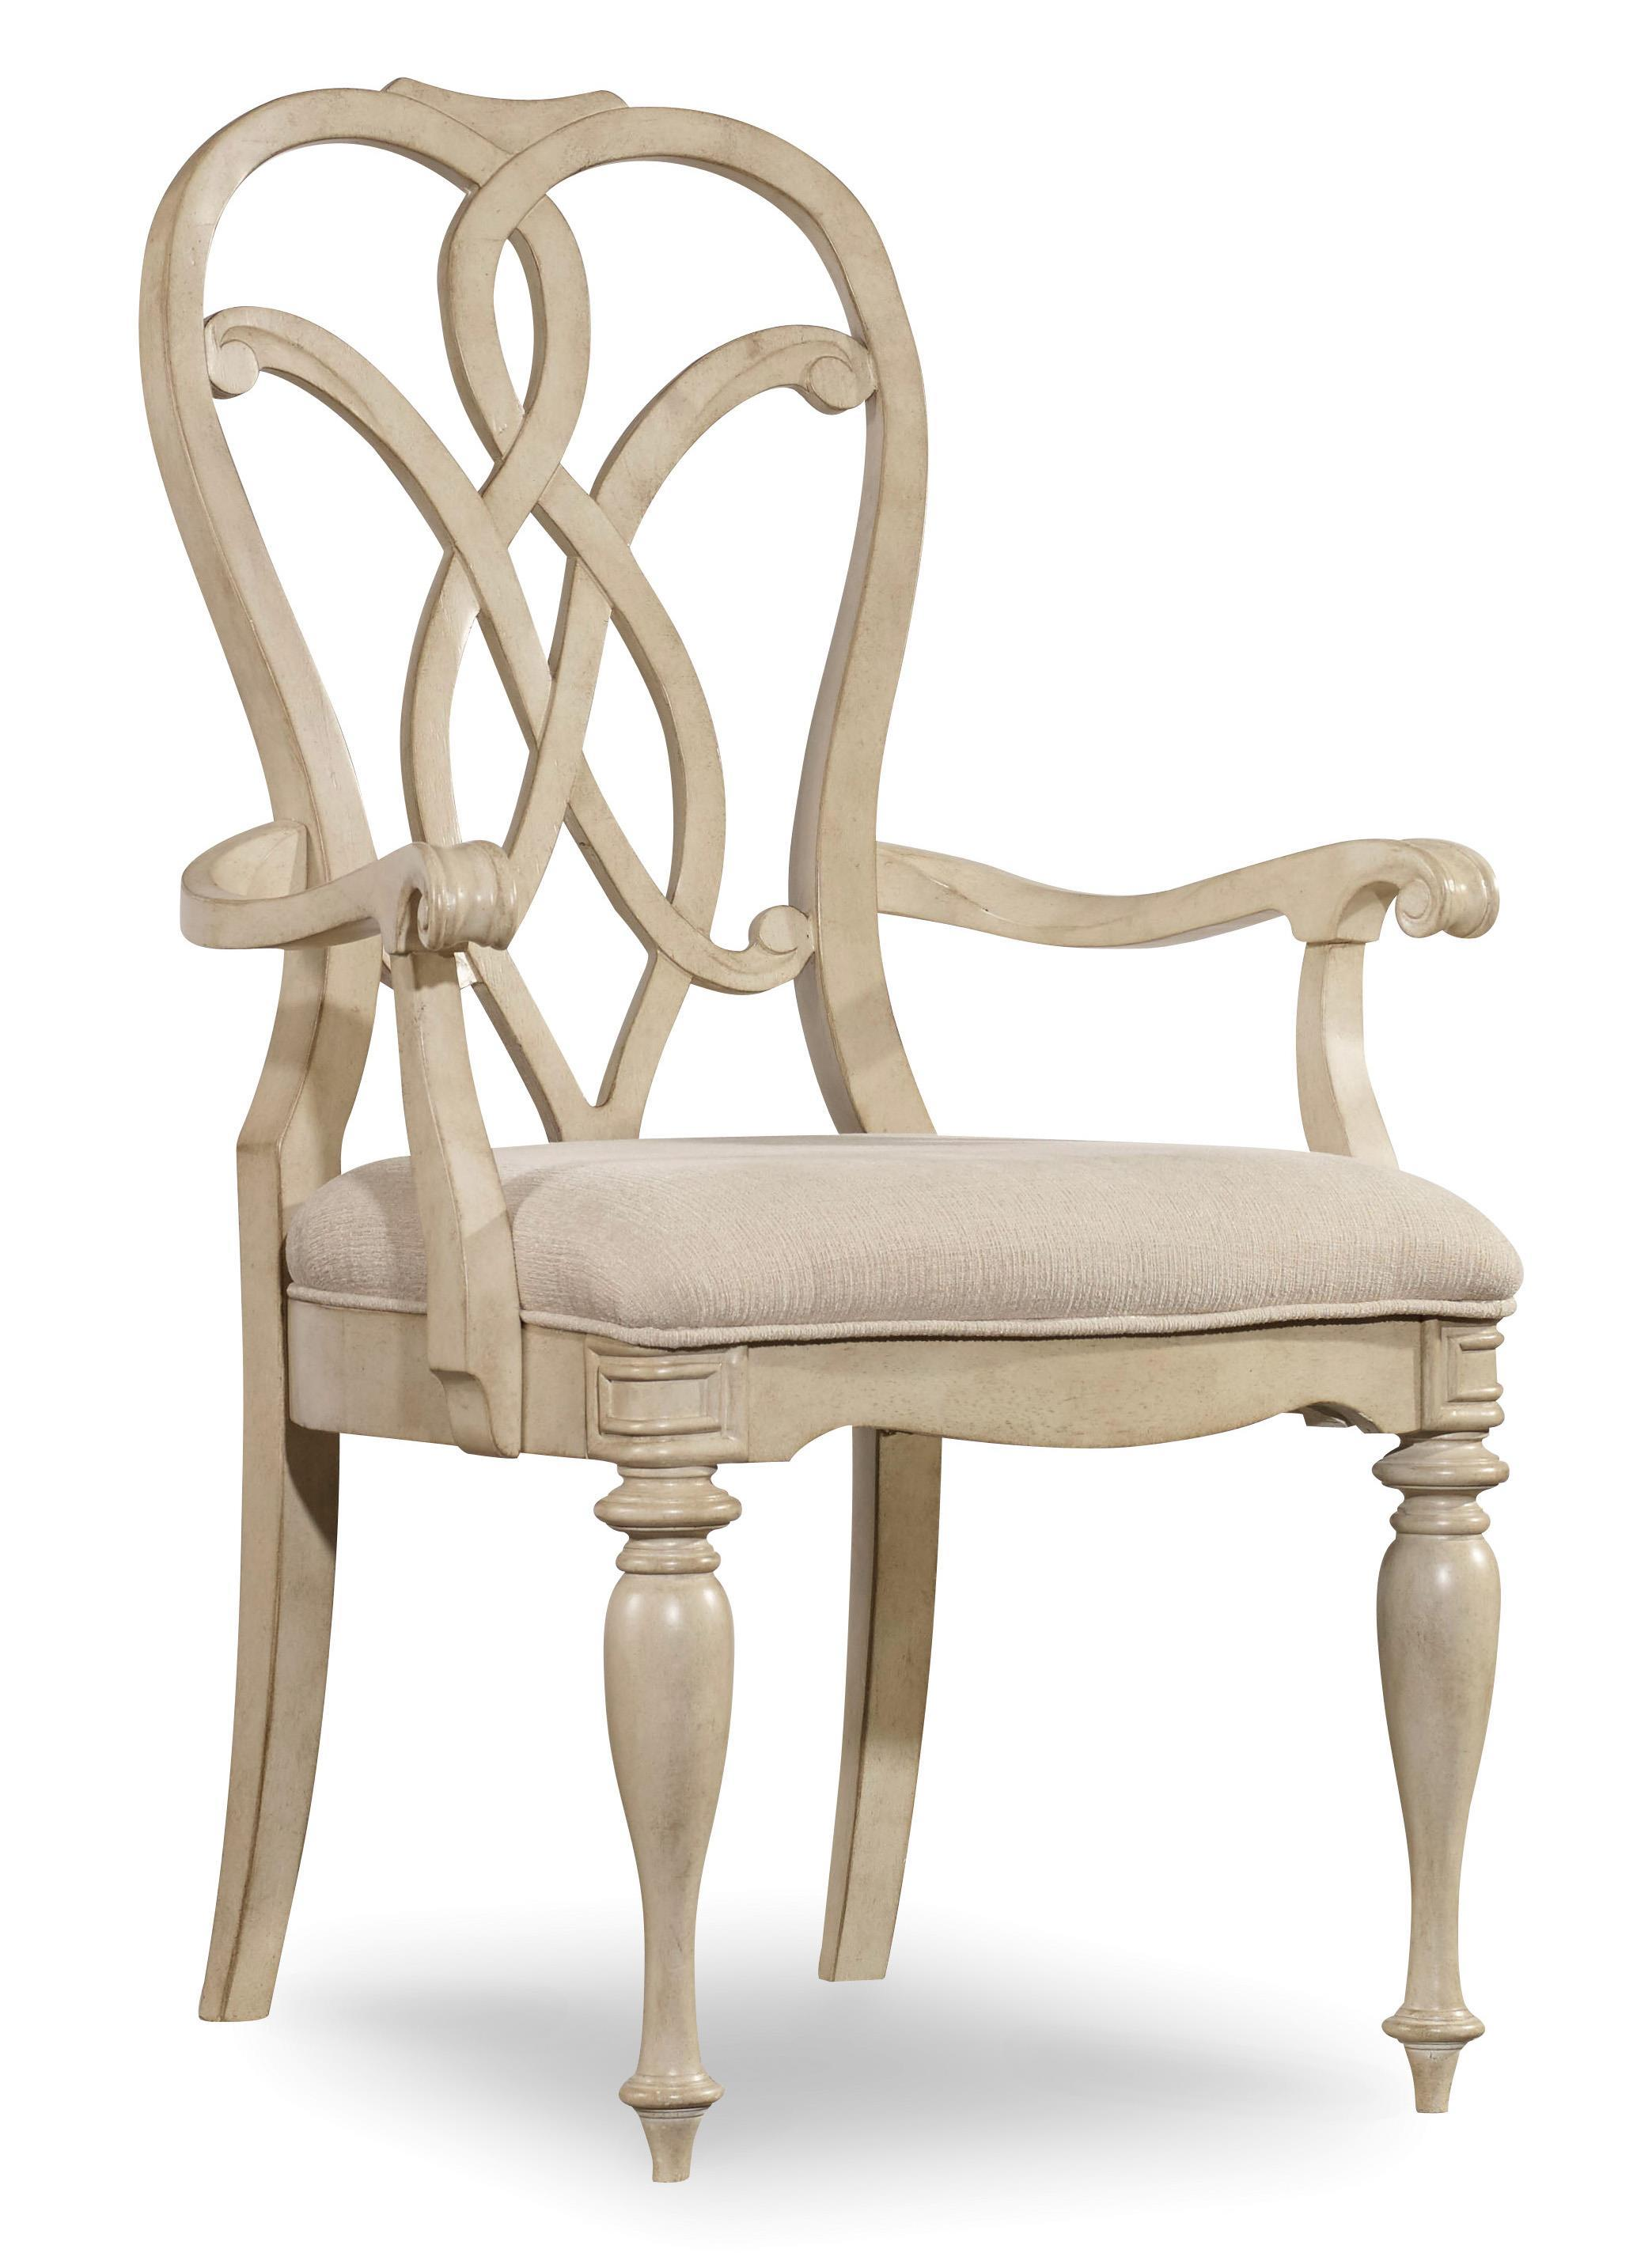 Hooker Furniture Leesburg Splatback Arm Chair - Item Number: 5481-75300